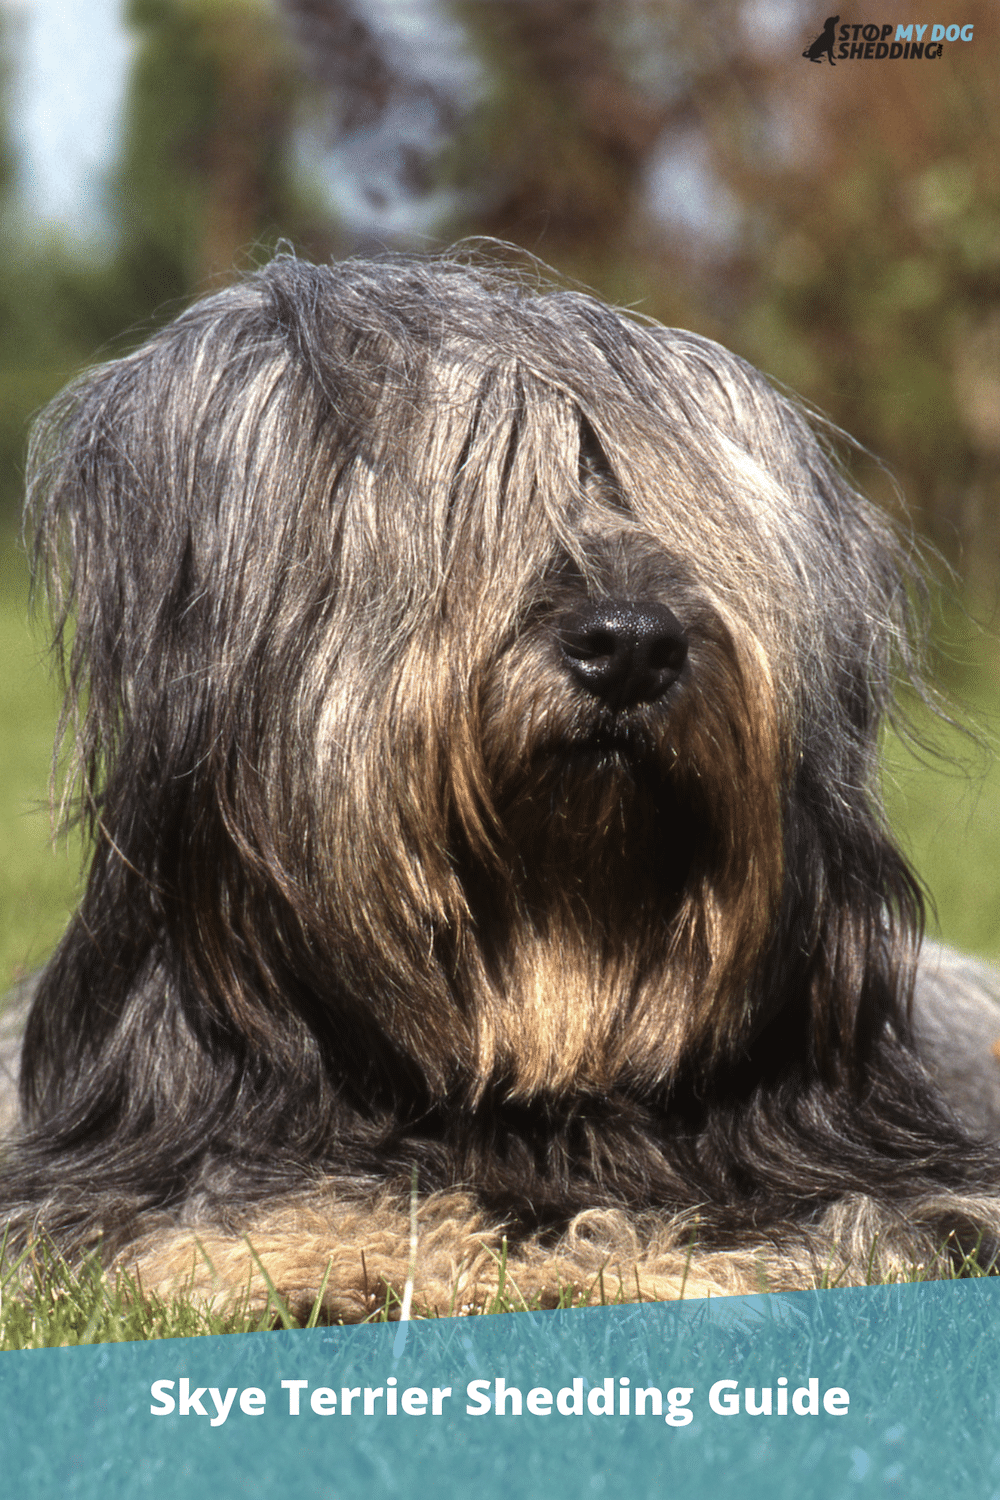 Do Skye Terriers Shed? (All You Need To Know)